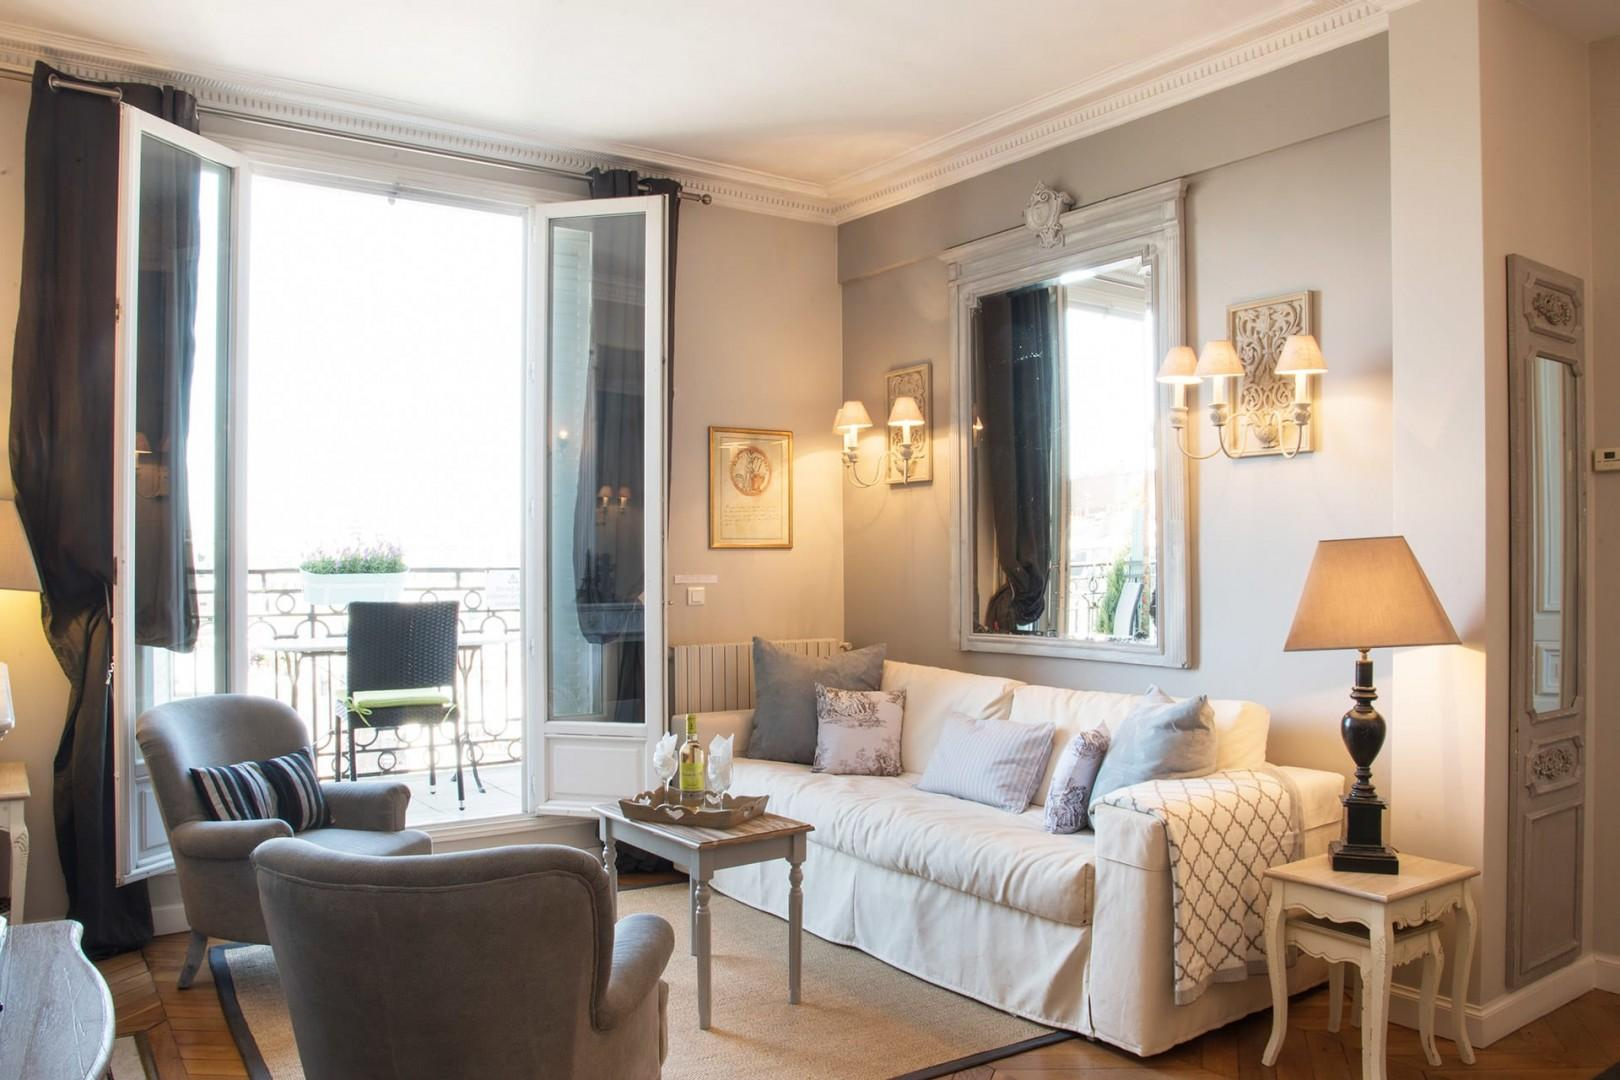 The spacious and sun-splashed rooms make it an excellent location for your Paris stay.